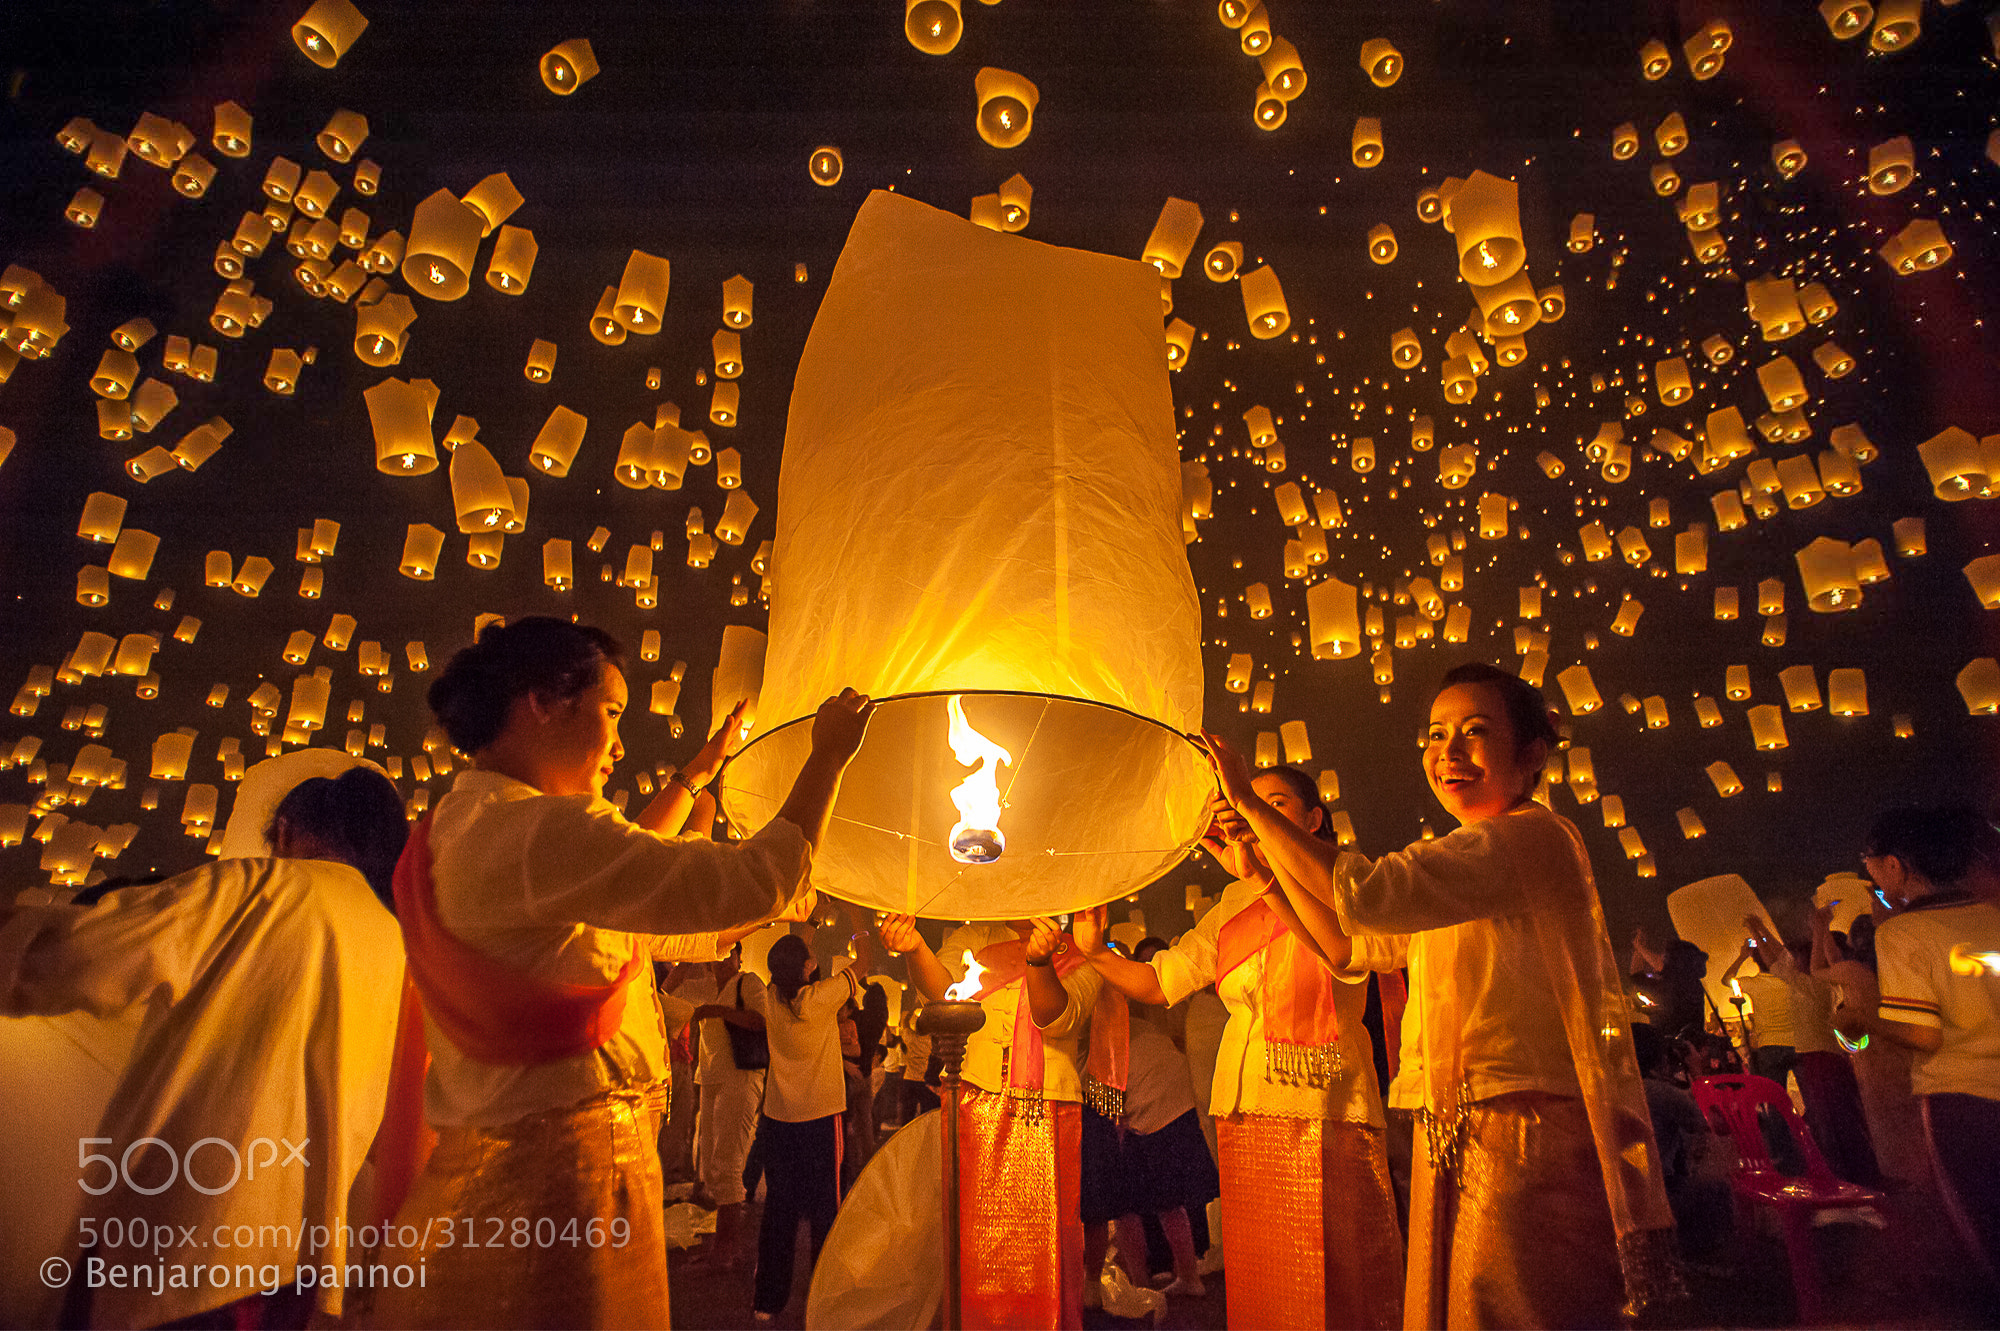 Photograph Yi Peng Festival by benjarong pannoi on 500px